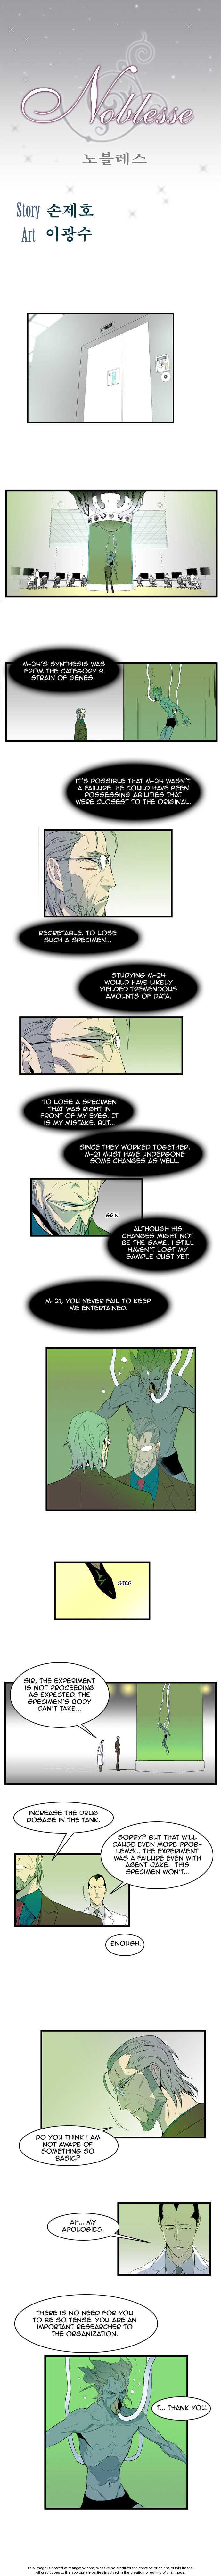 Noblesse 82 Page 1